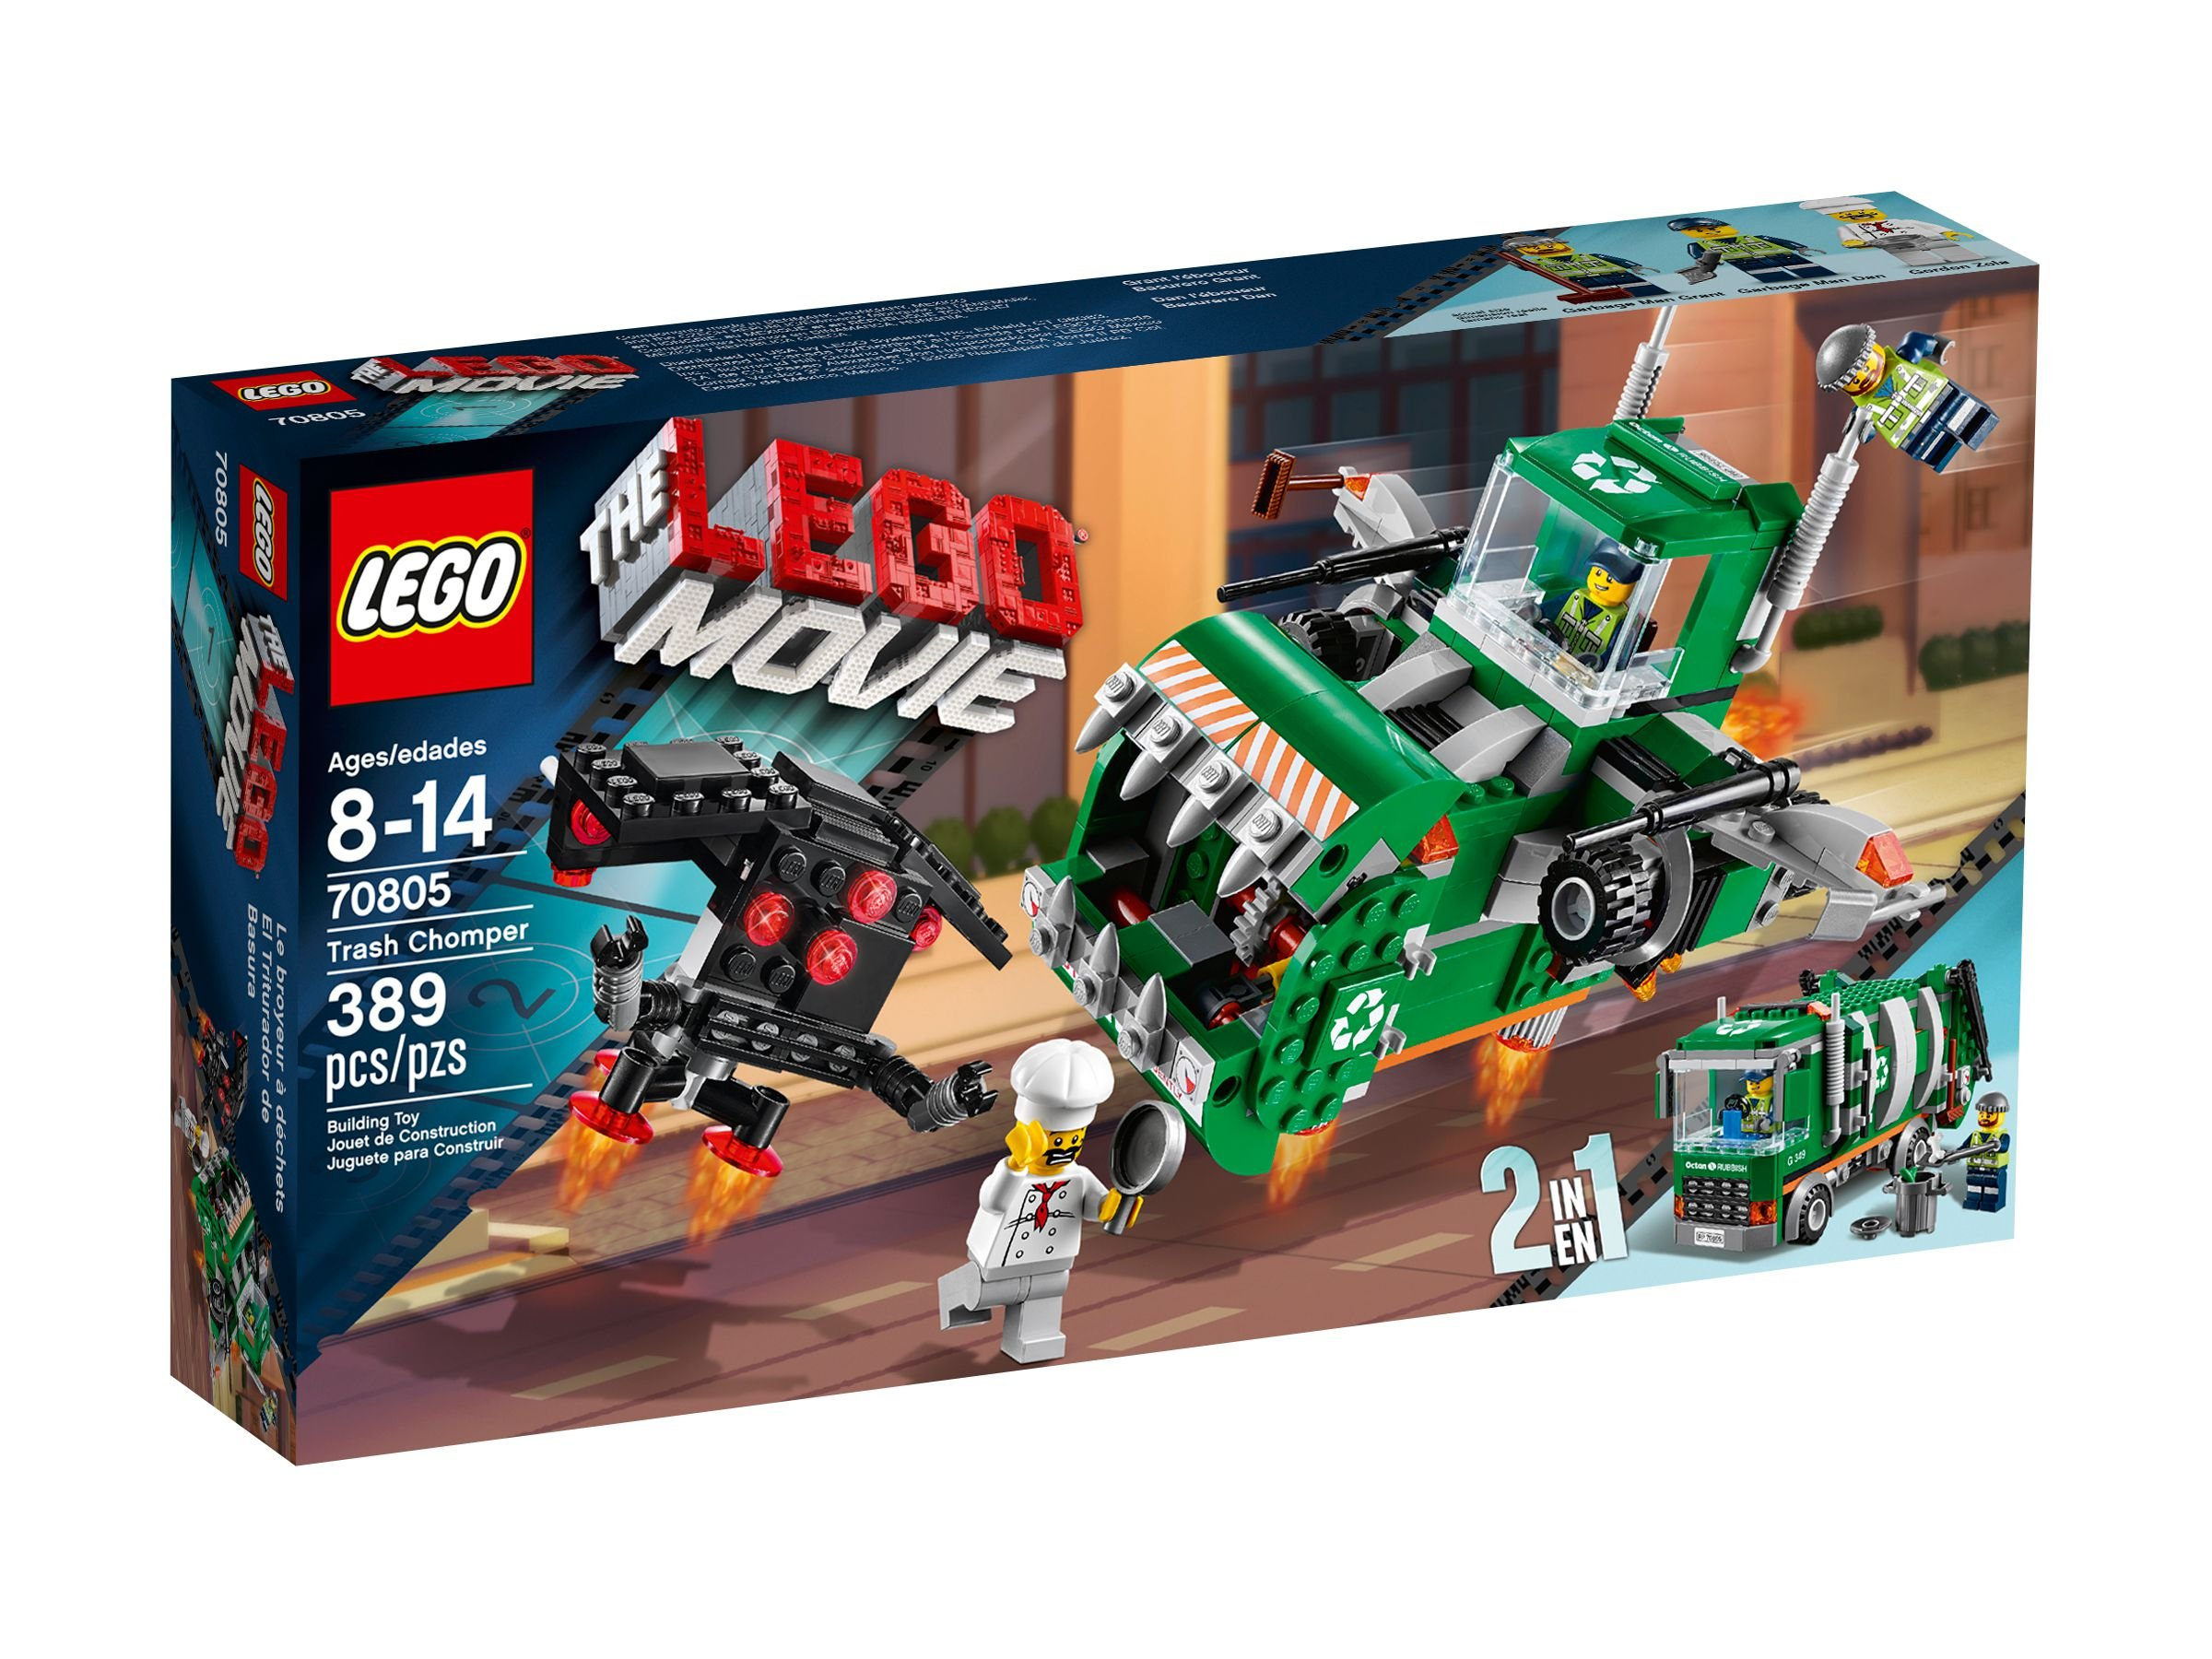 LEGO The LEGO Movie 70805 Müllschlucker LEGO_70805_alt1.jpg